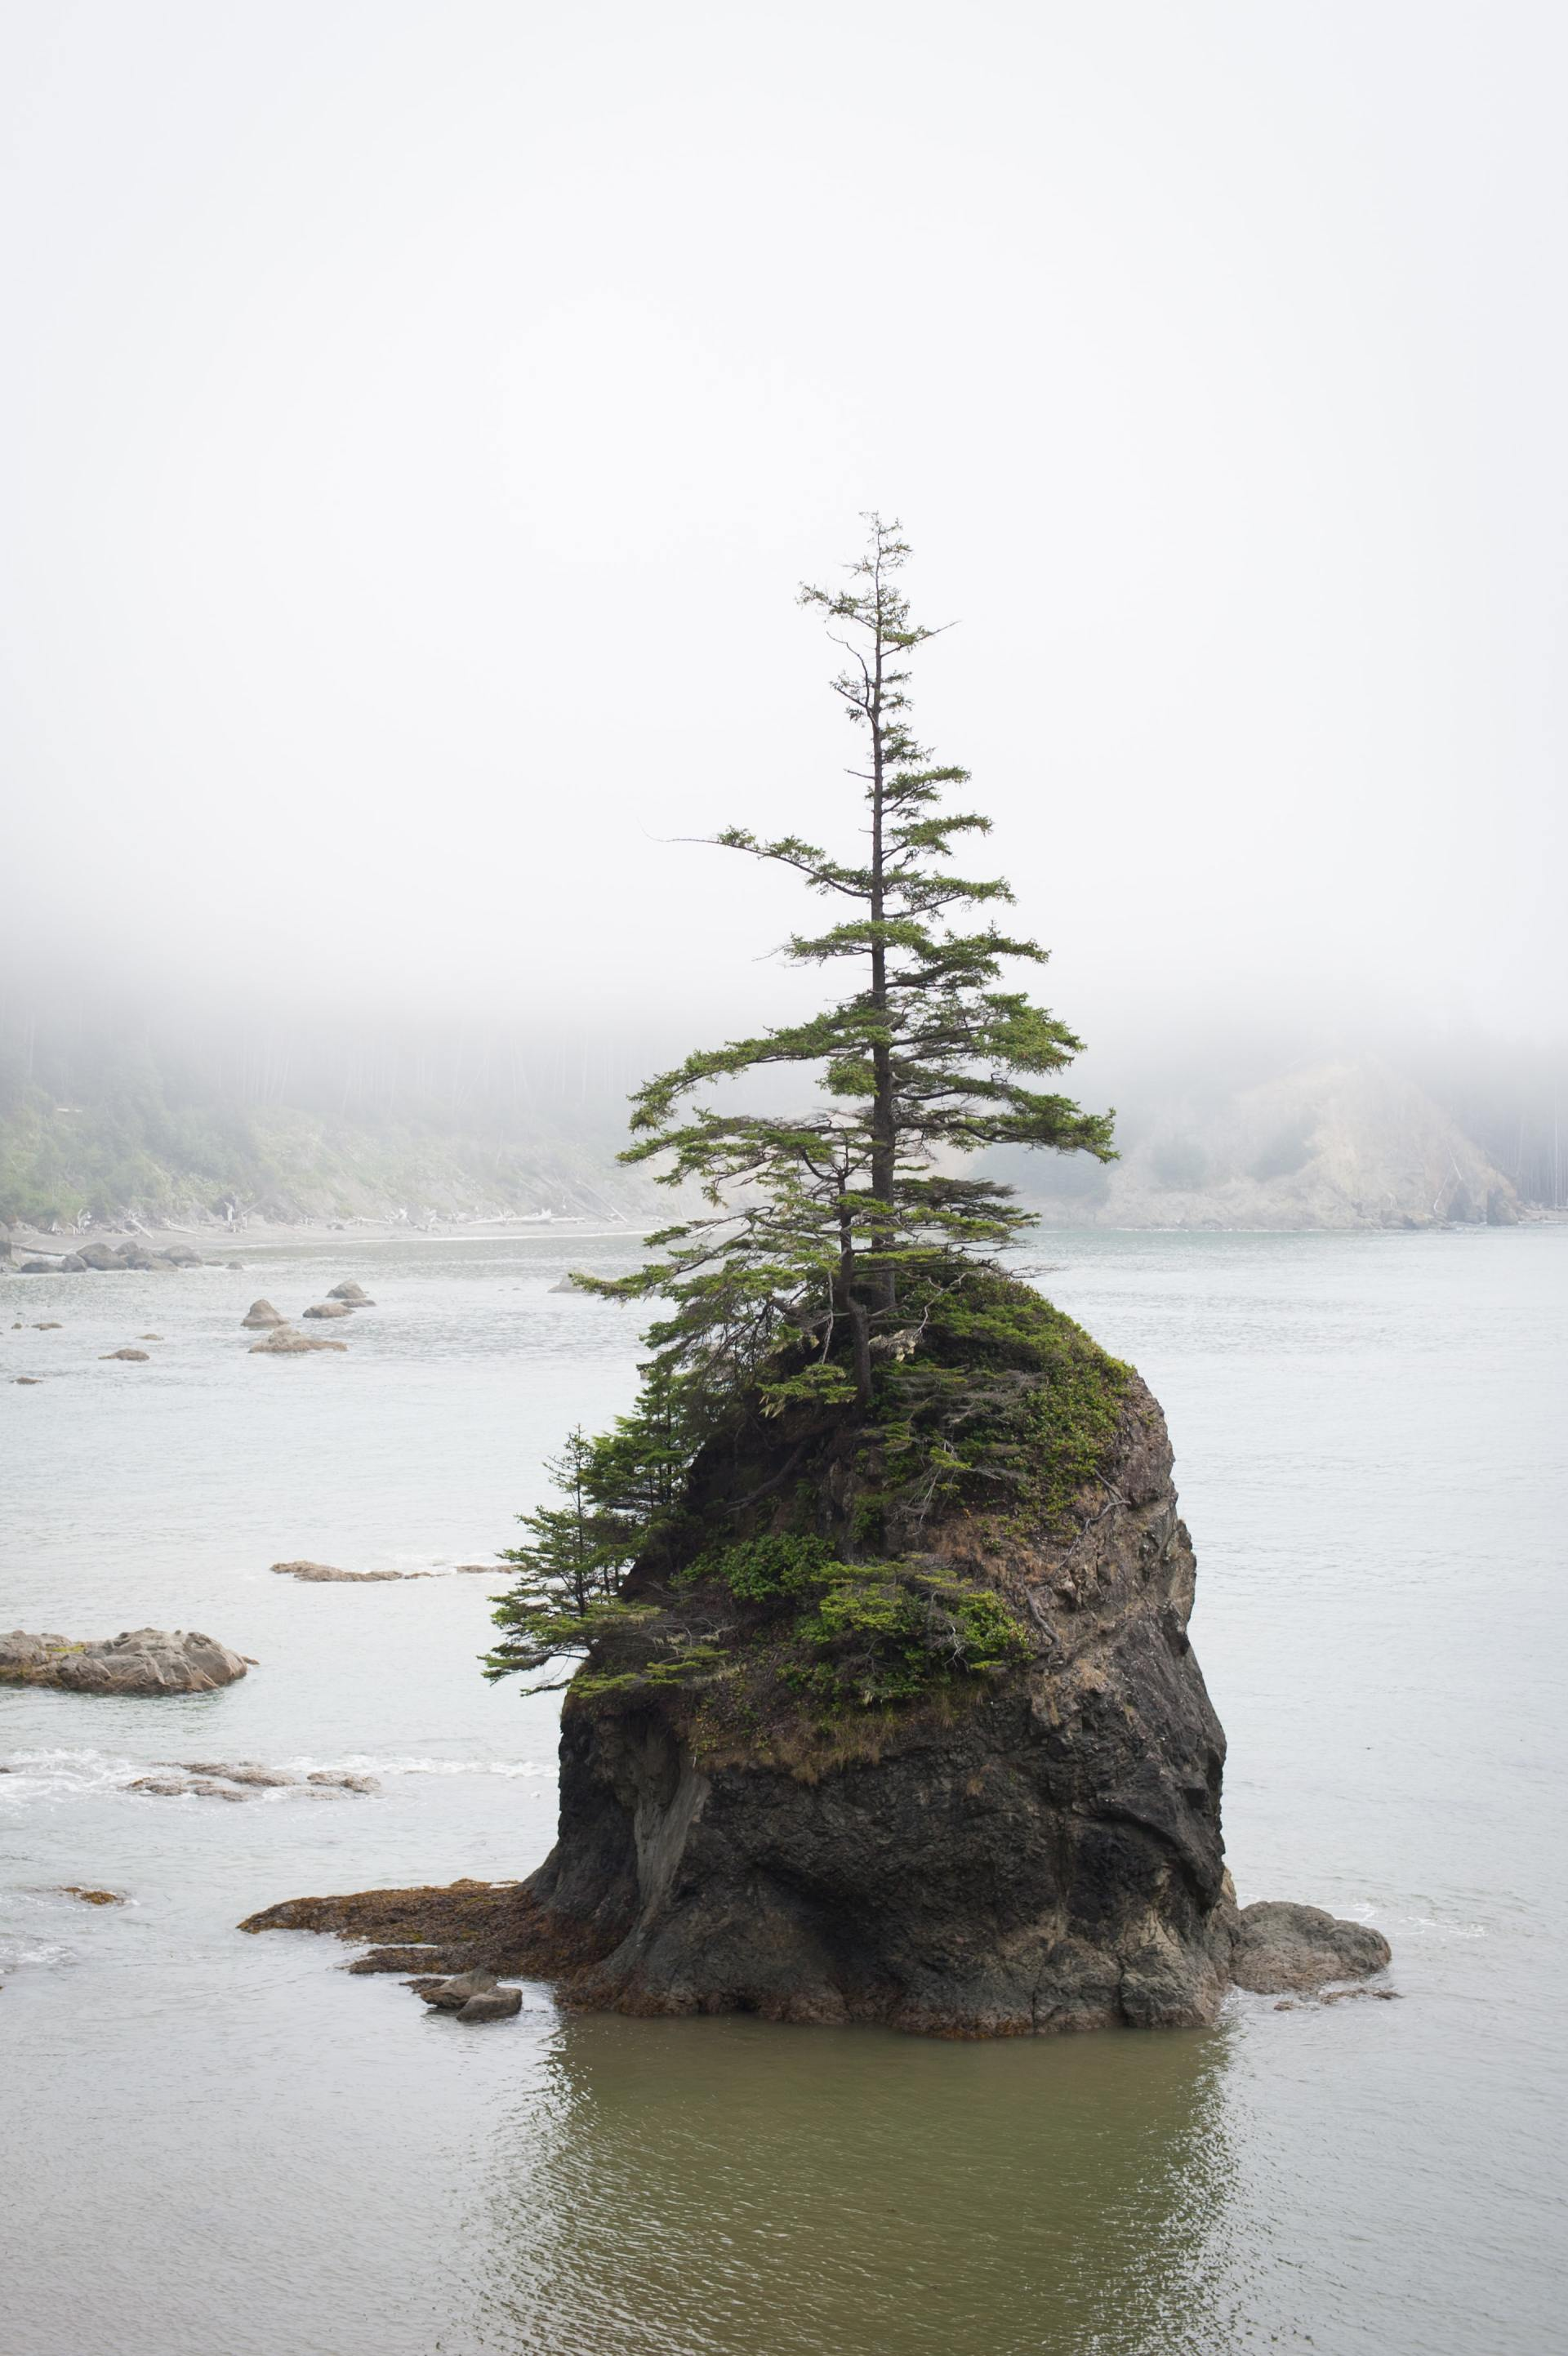 Single tree growing into boulder surrounded by water